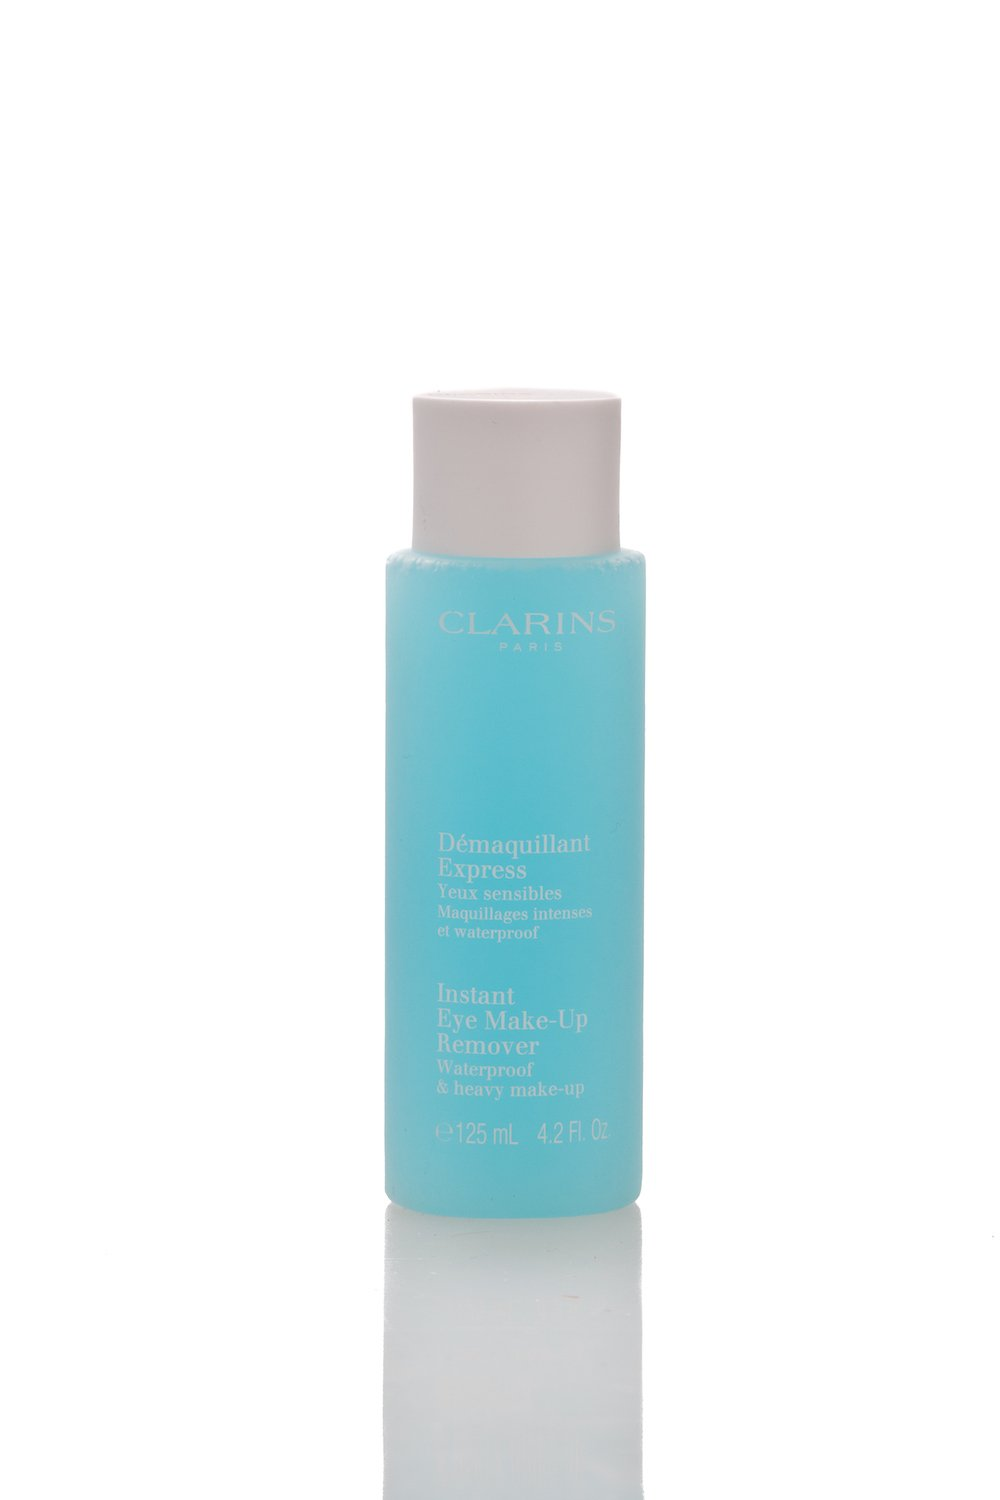 Cleansing Care by Clarins Instant Eye Make-Up Remover 125ml